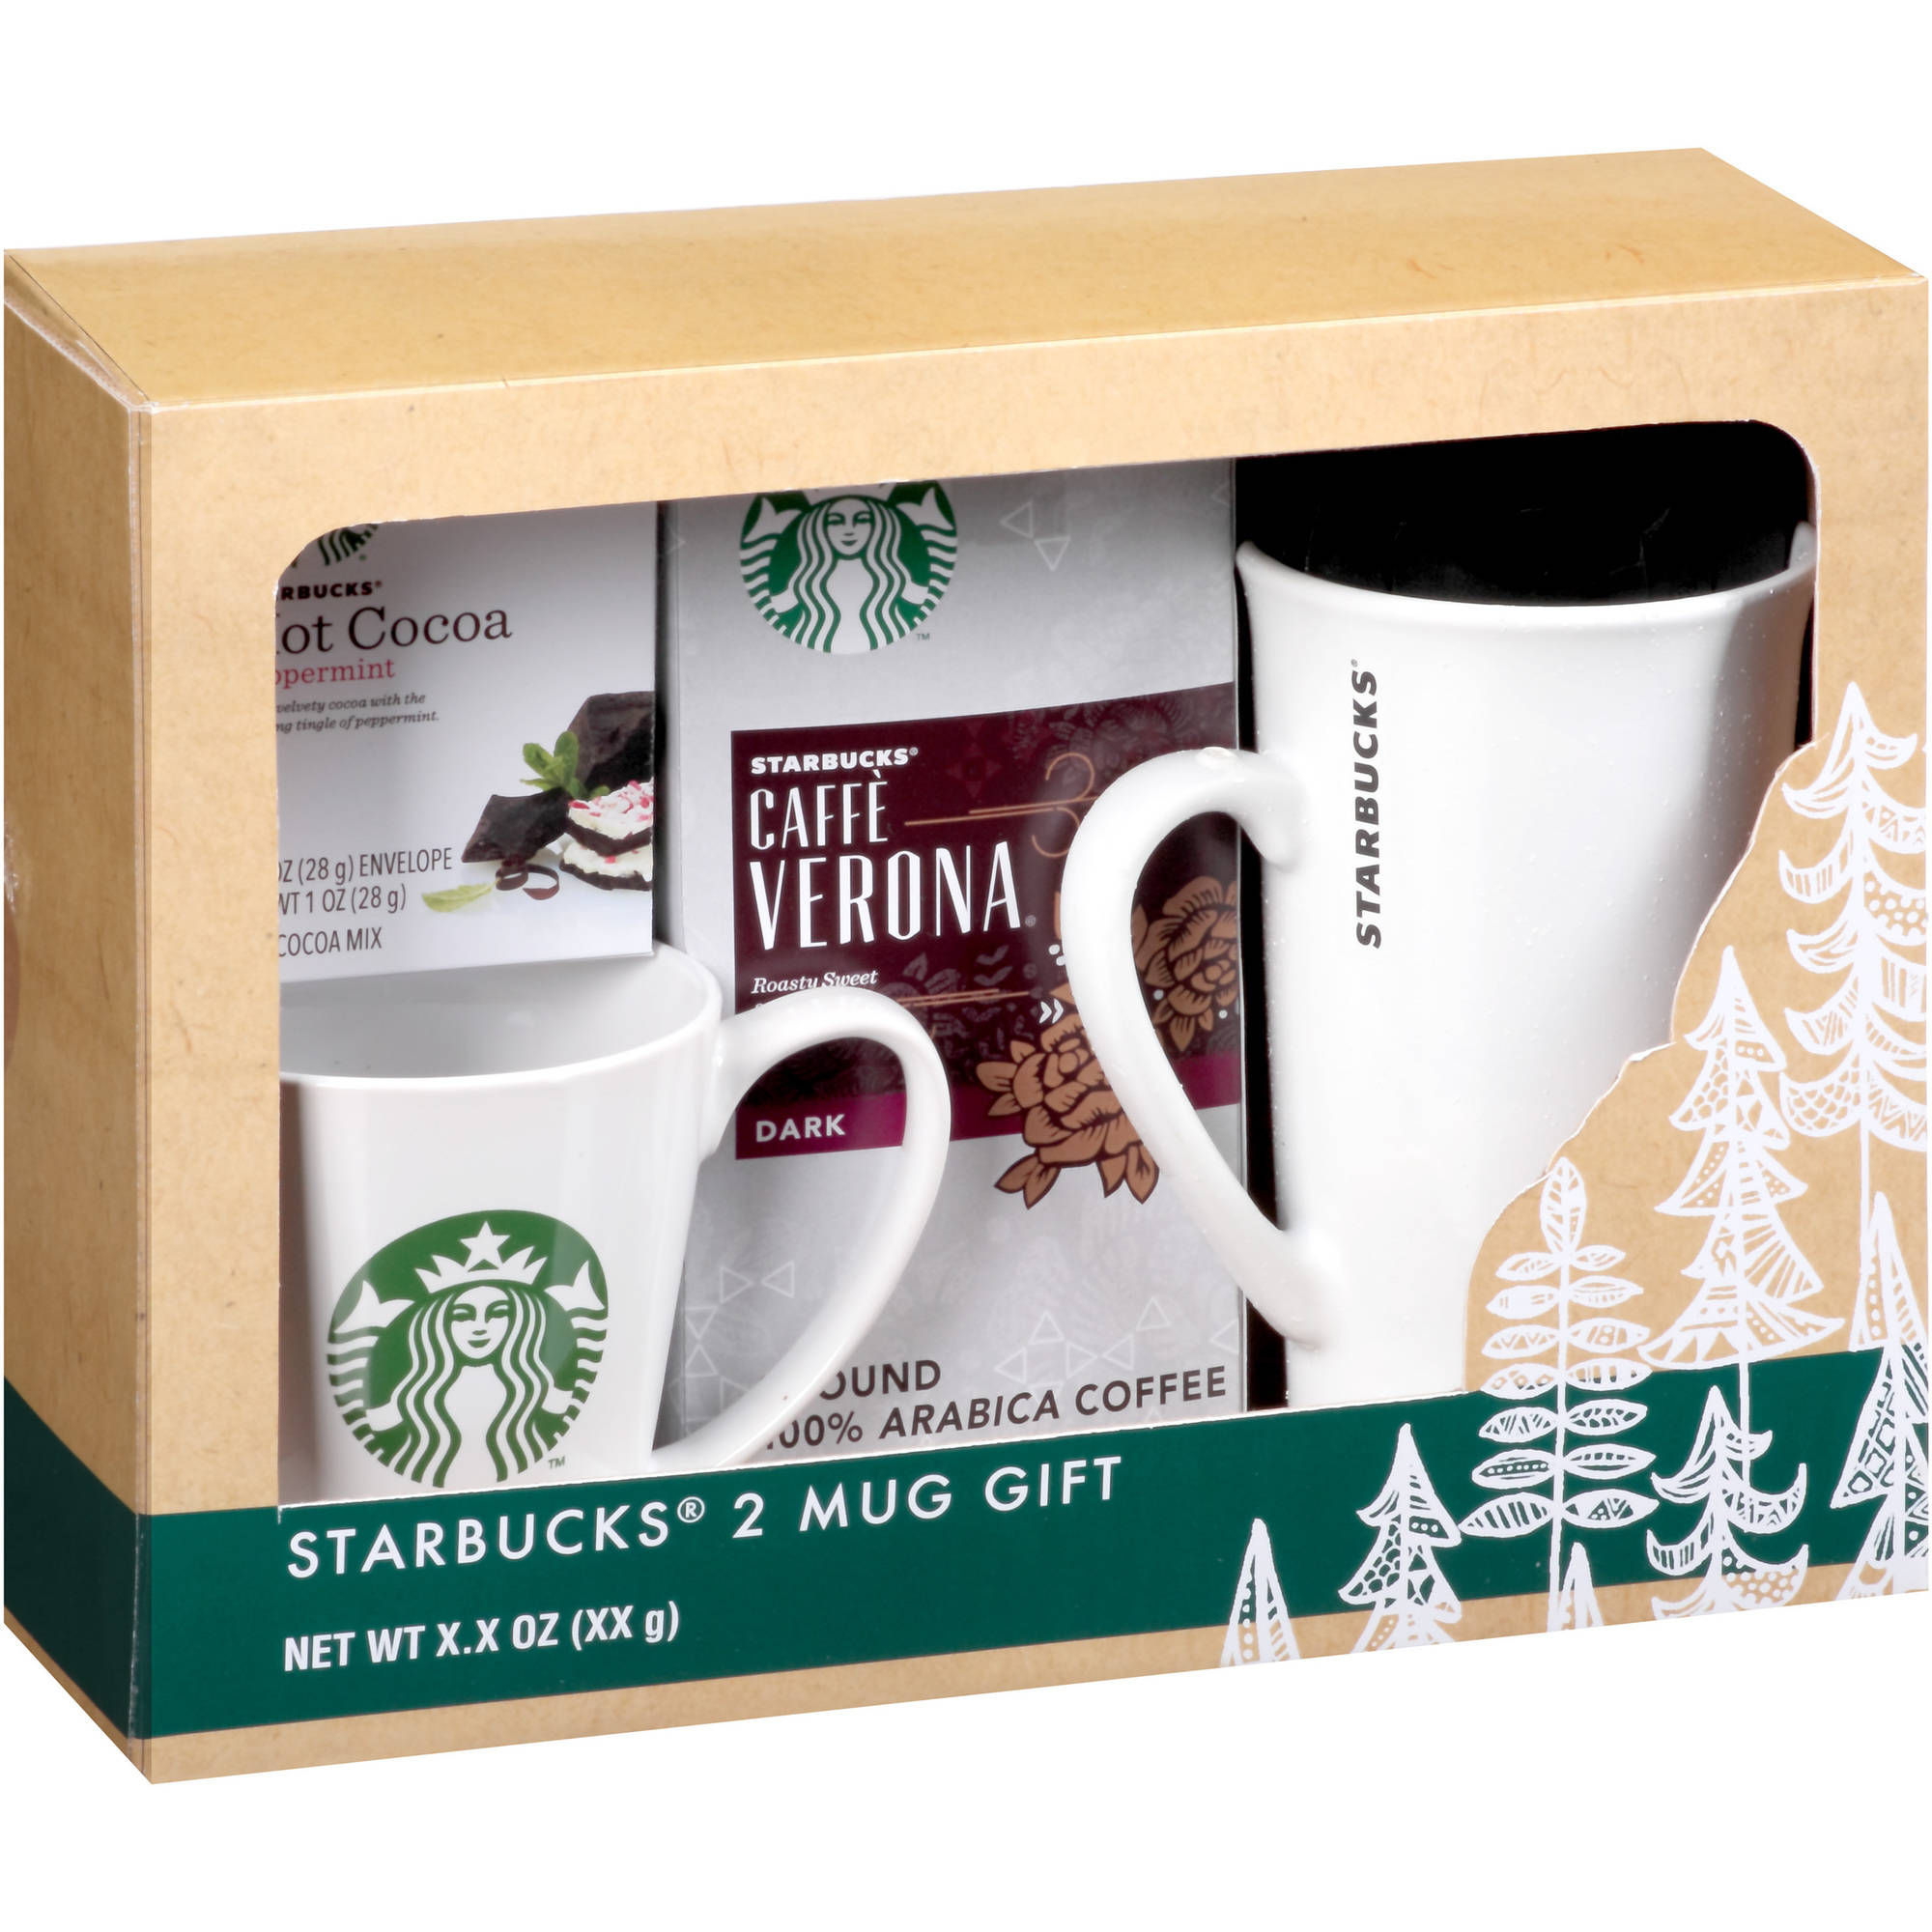 Starbucks 2 Mug Holiday Gift Set, 4 pc